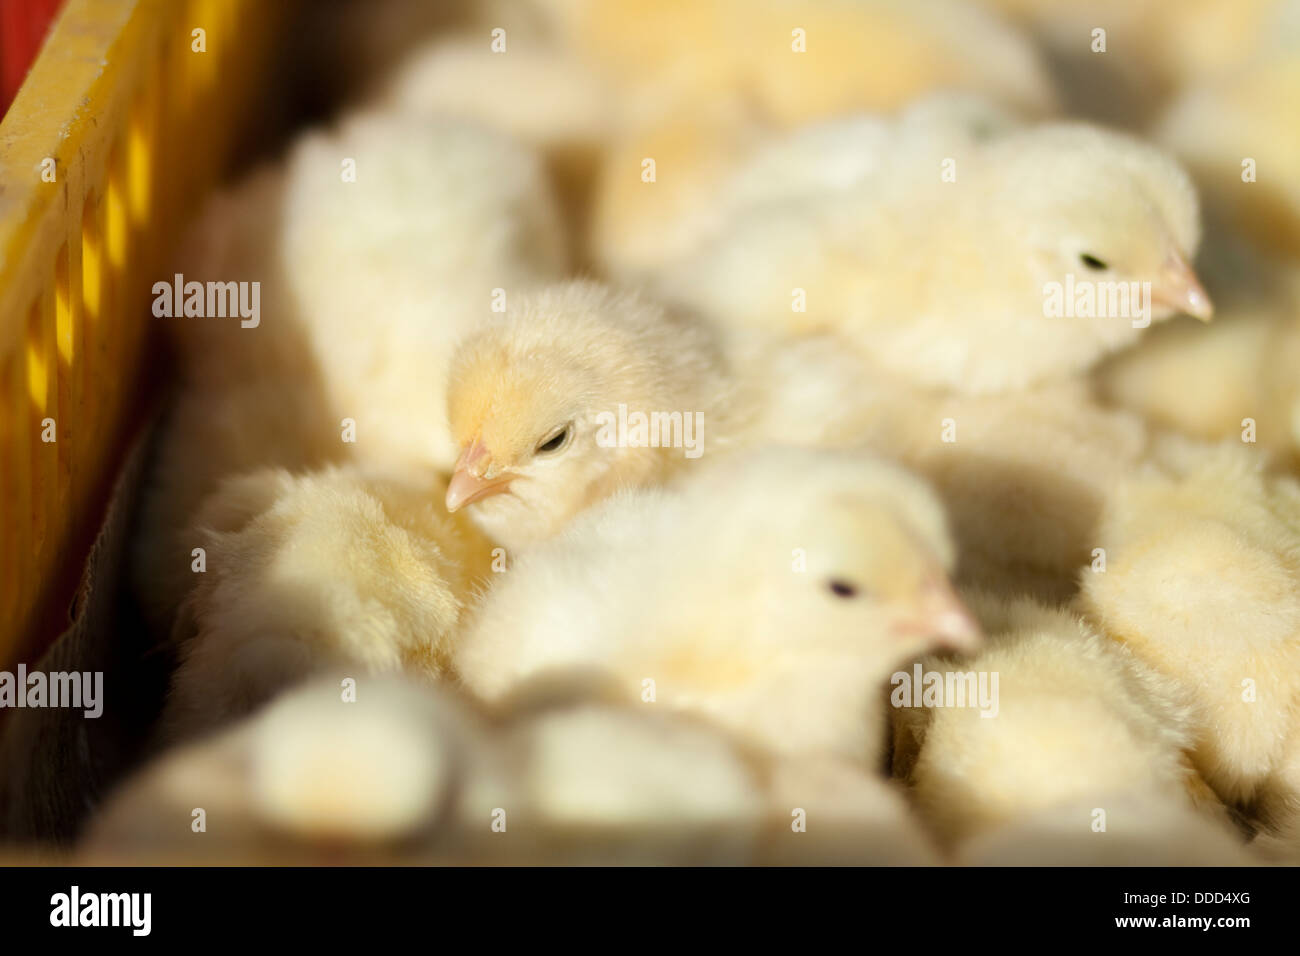 Young fledglings - Stock Image